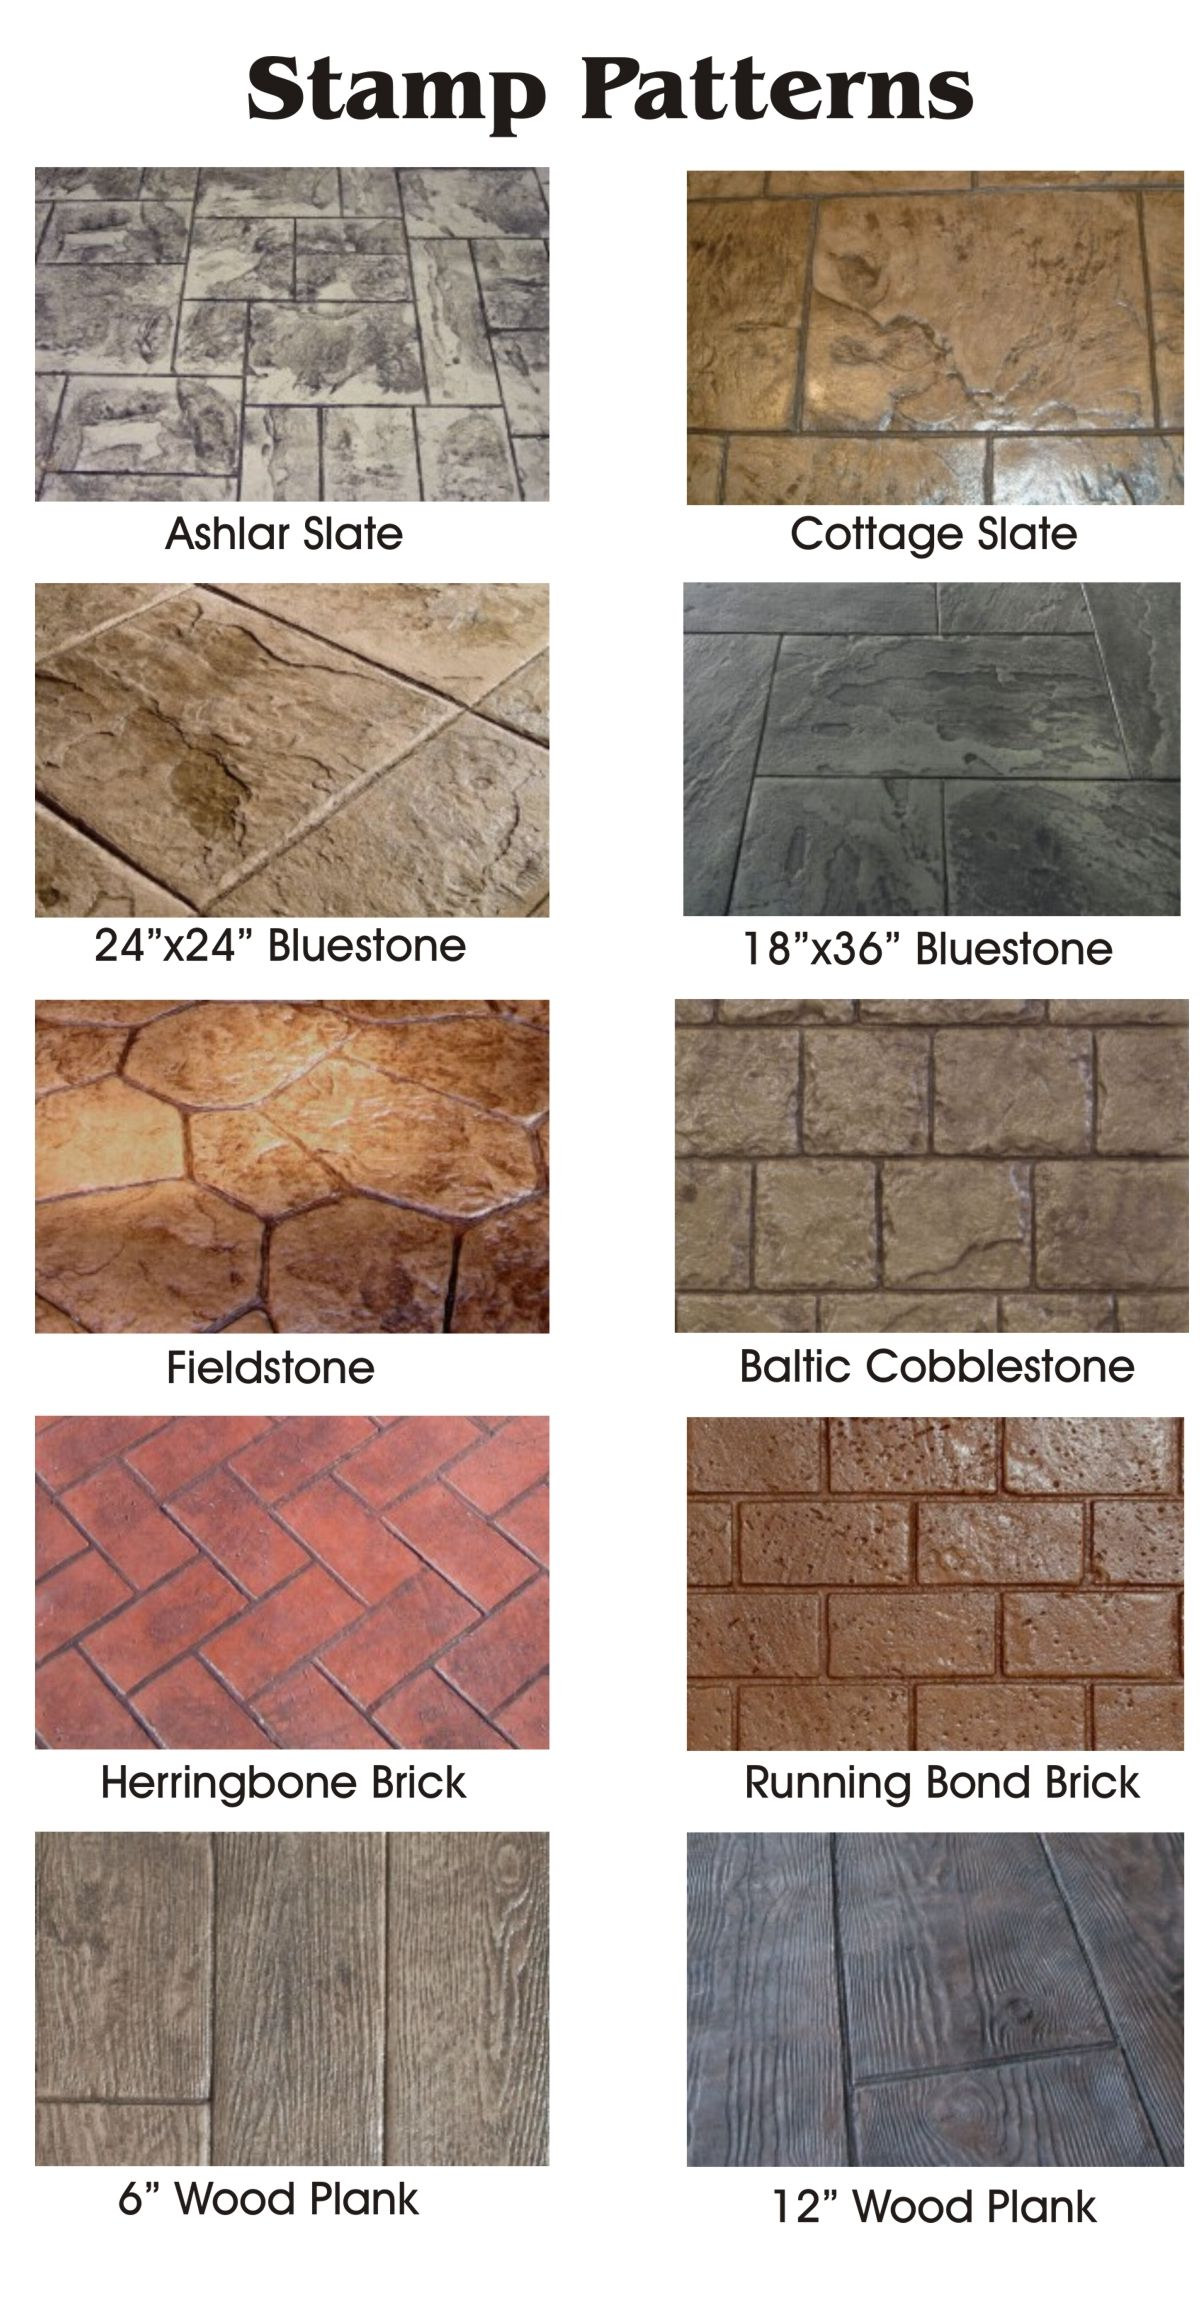 Stamped Concrete Brings The Look Of Natural Stone And